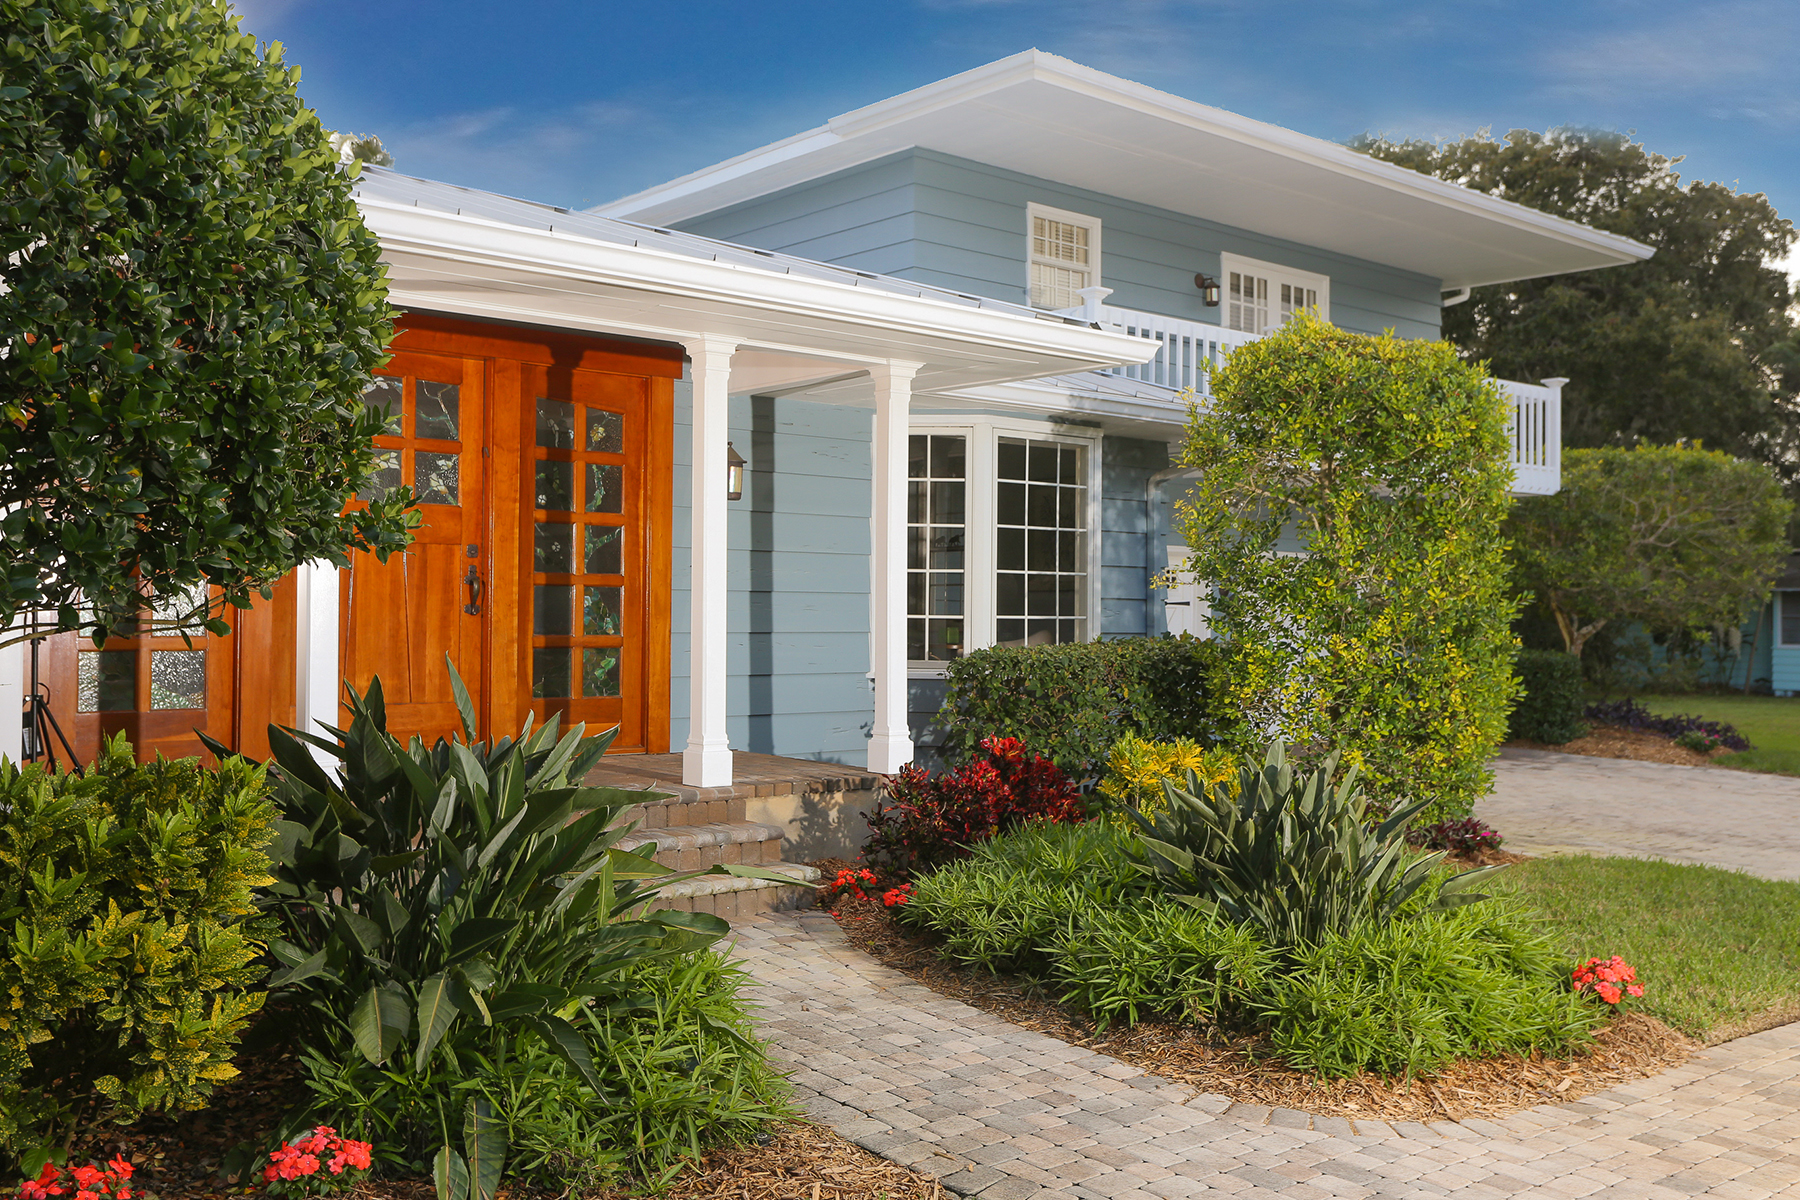 Single Family Home for Sale at CHEROKEE PARK 1662 South Dr Sarasota, Florida 34239 United States